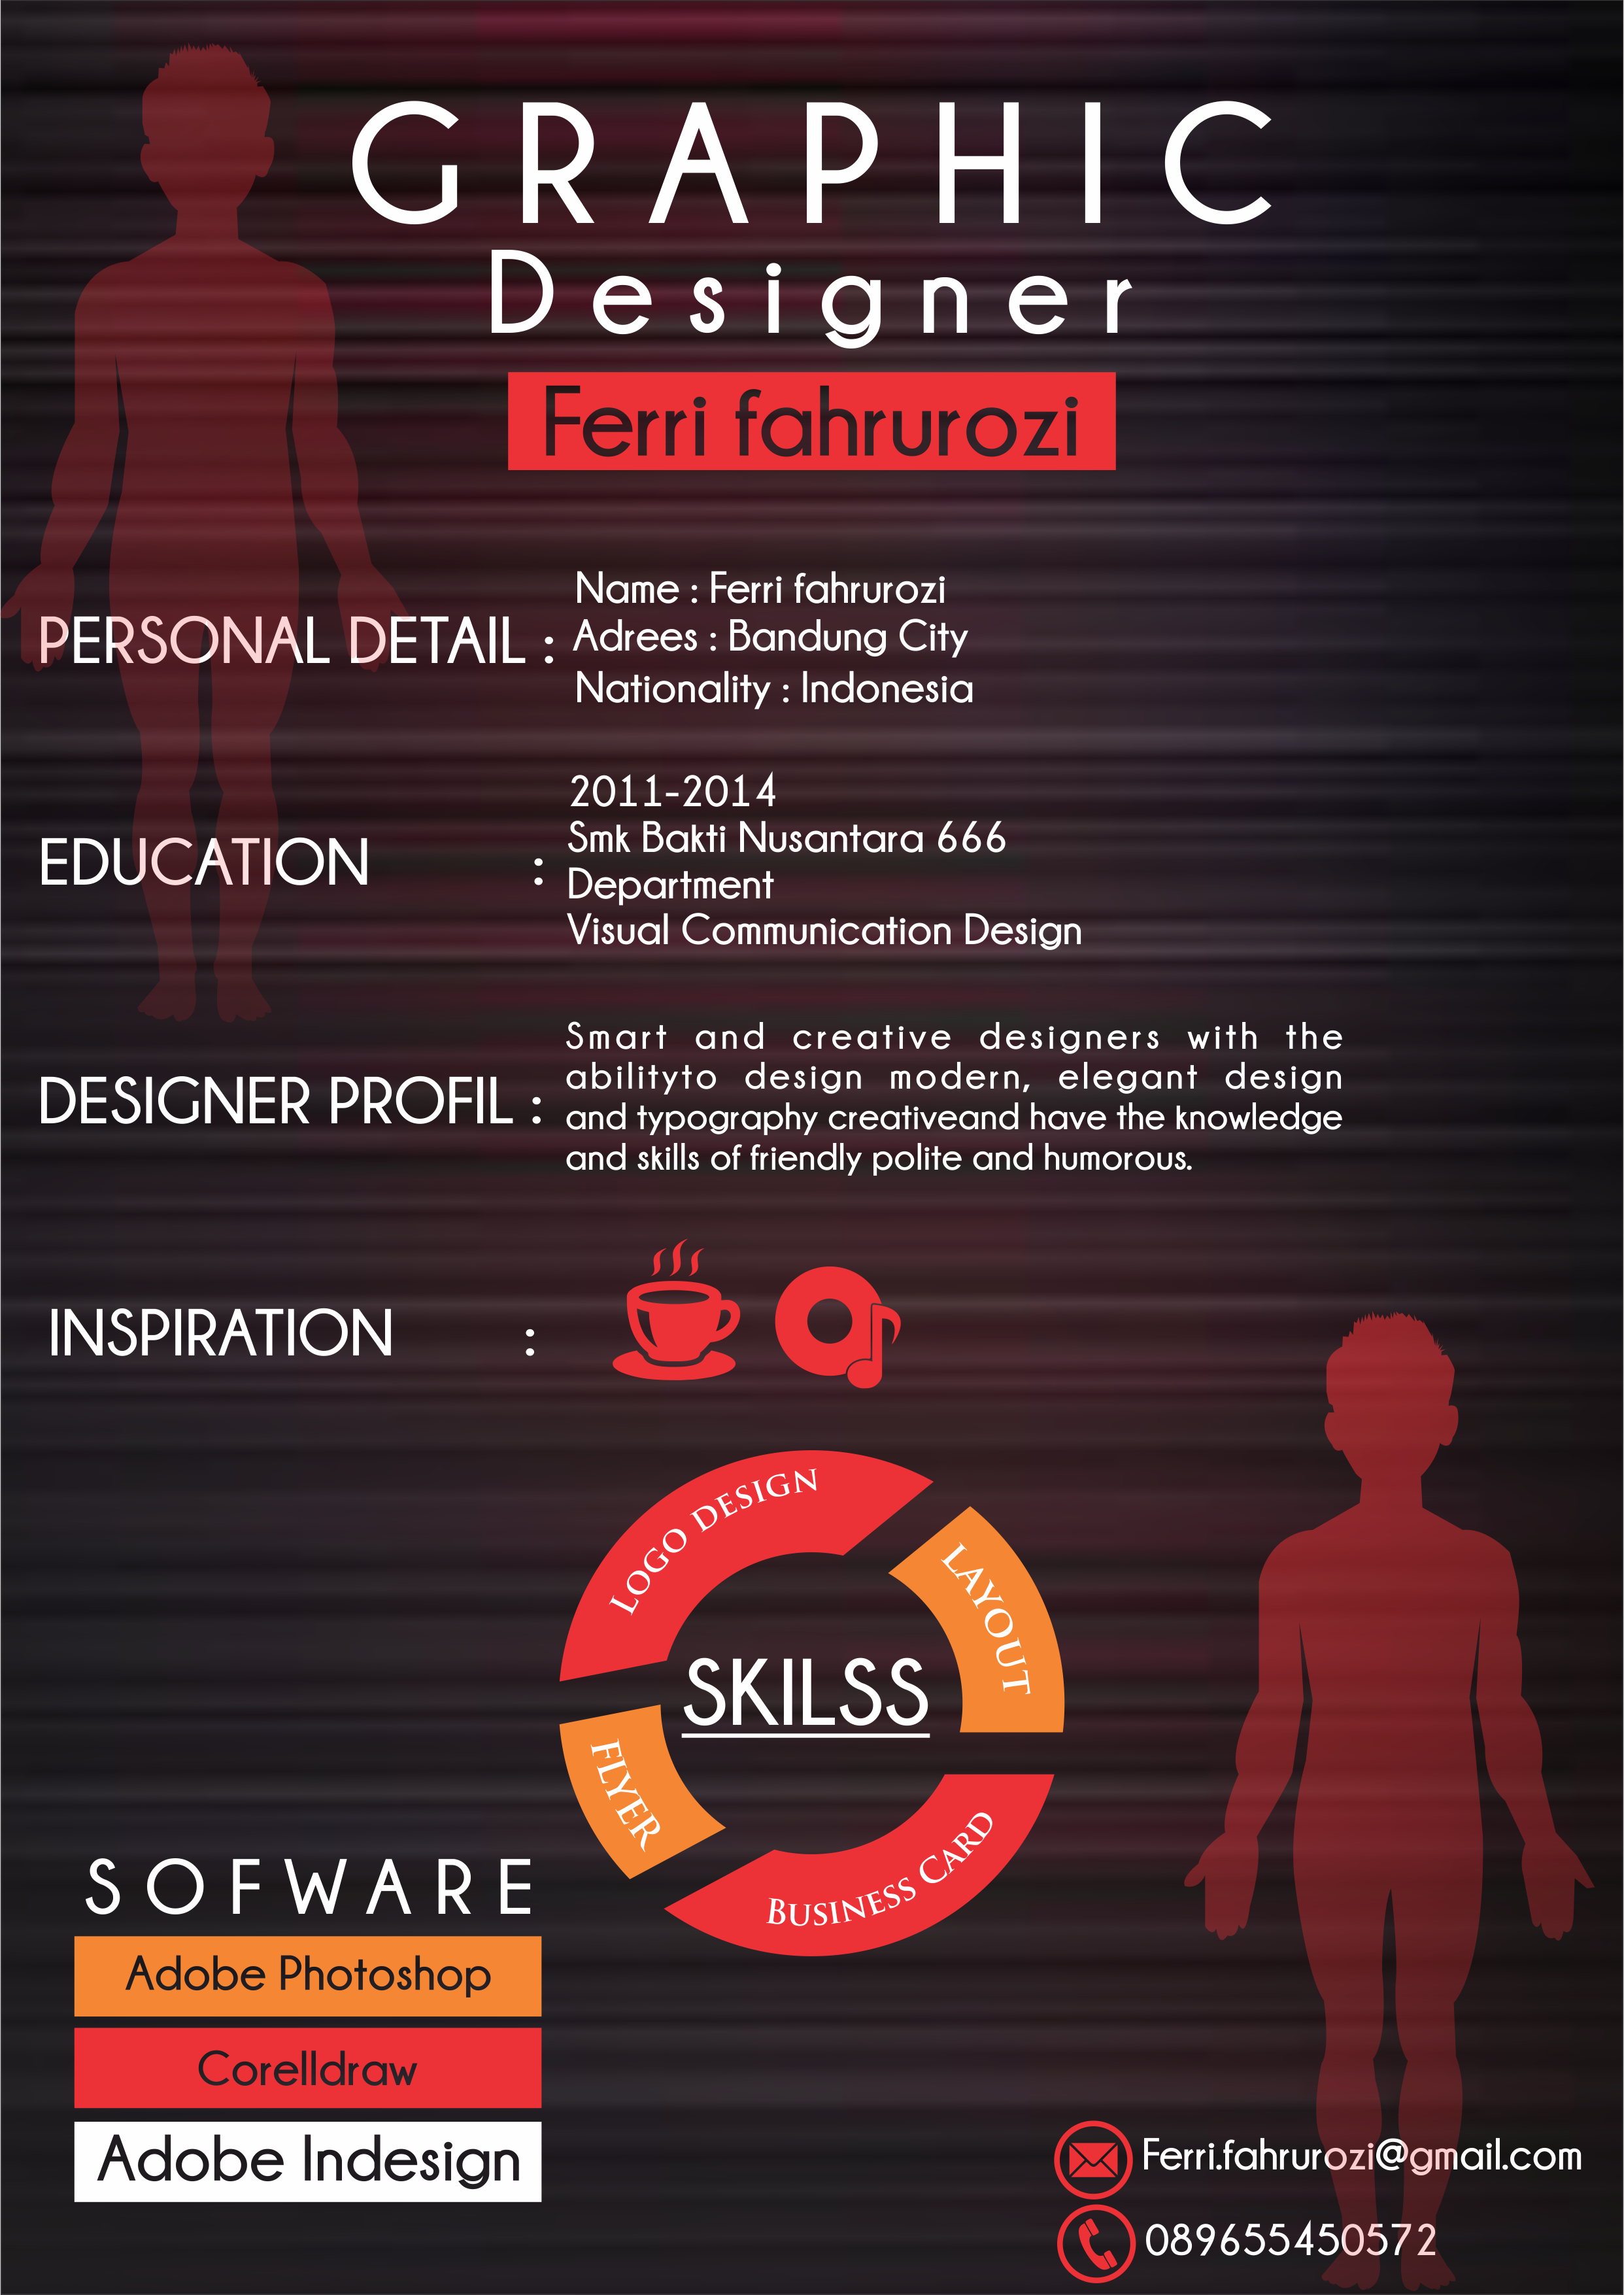 CREATE YOUR RESUME DESIGN JUST